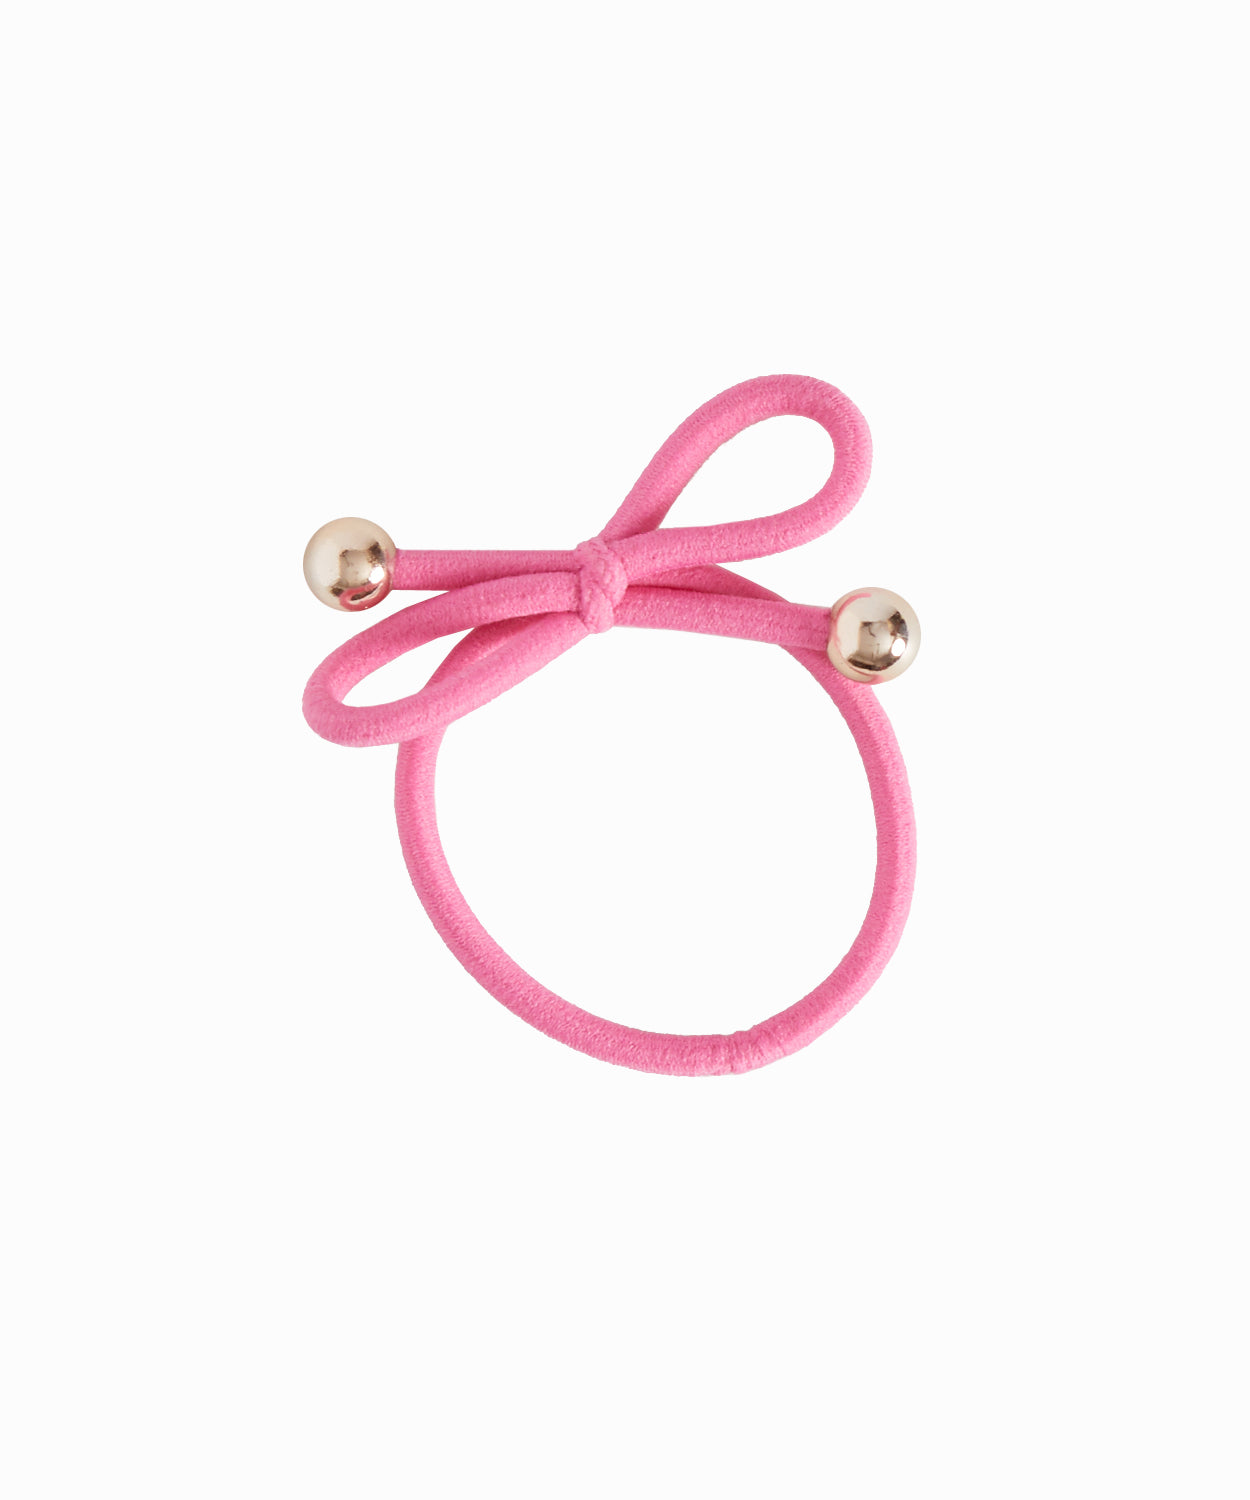 Gold Bead Pink Hair Tie